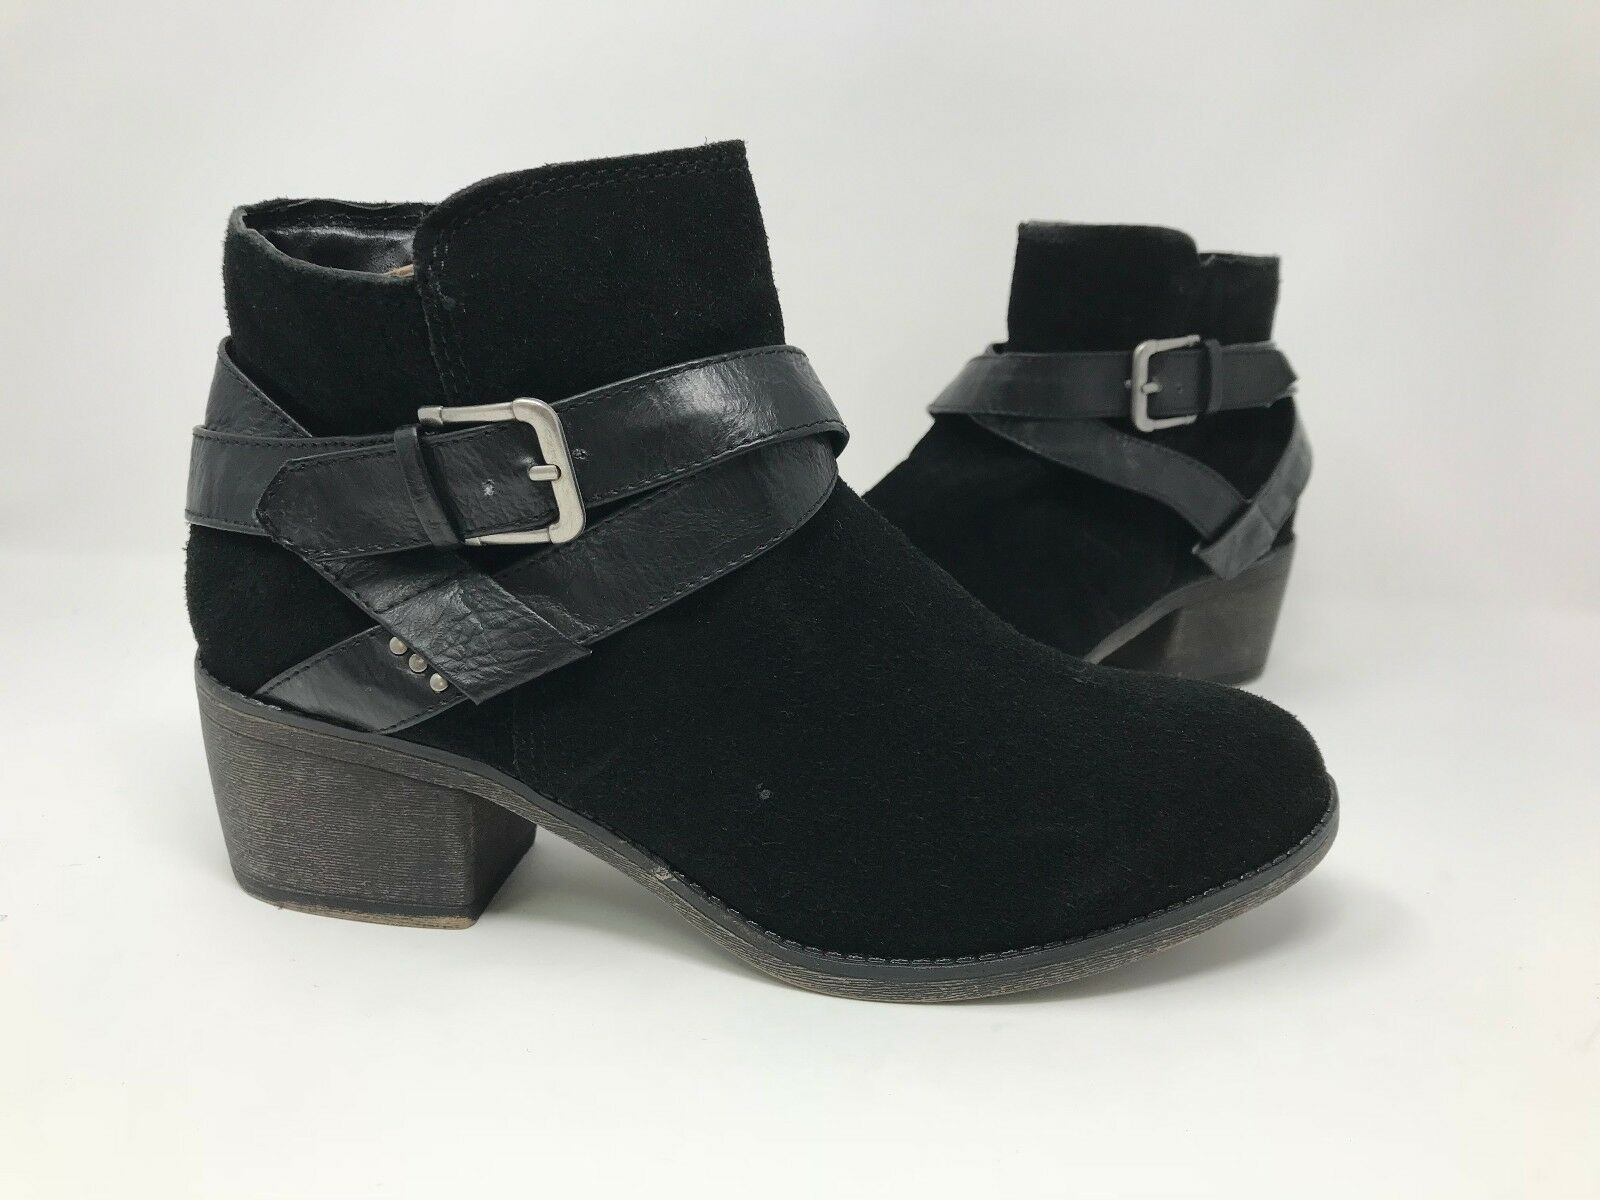 New! Women's Sonoma Brindle 088048 Suede Ankle Boots - Black B37